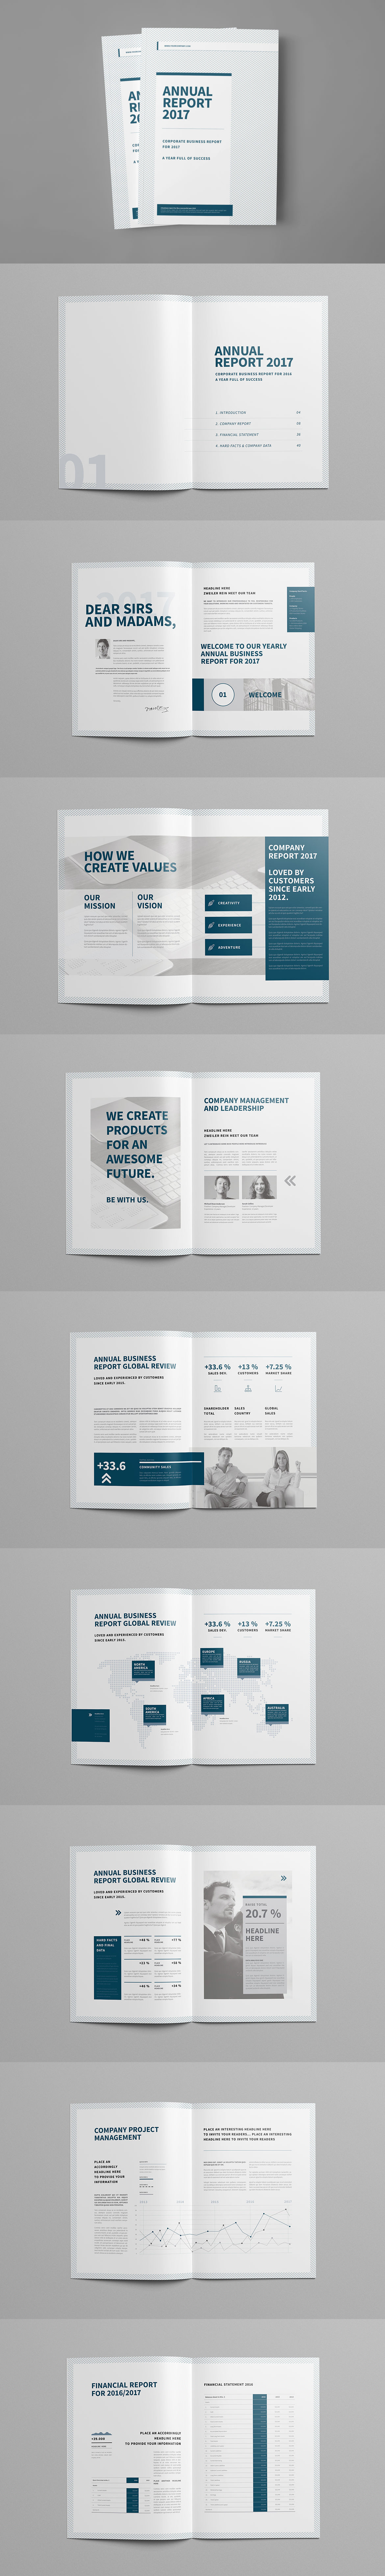 Minimal and Professional Annual Report or Company Brochure Template ...